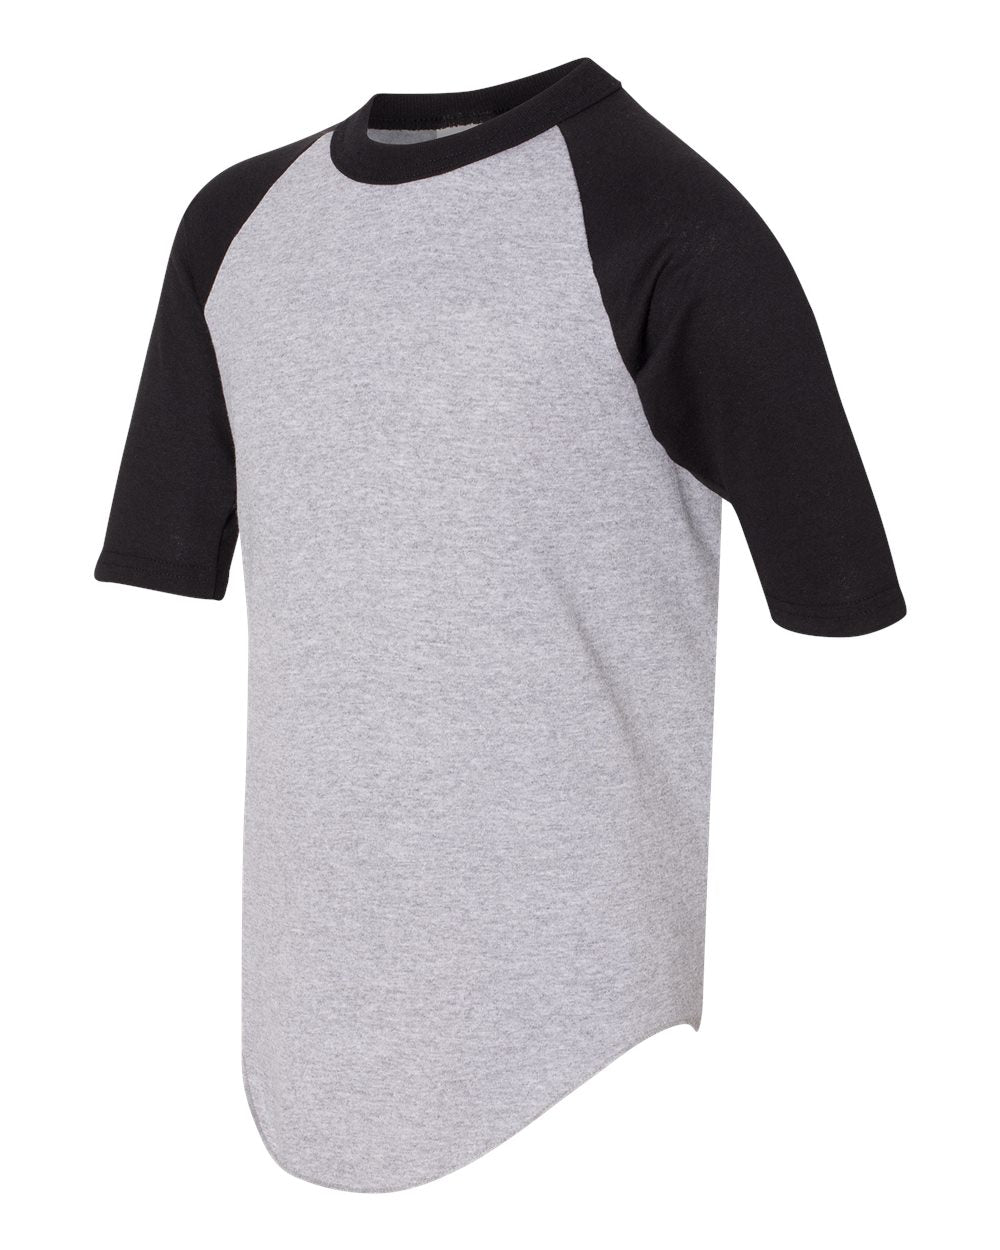 4420 - Augusta 3/4 Length Raglan - Small to 3X